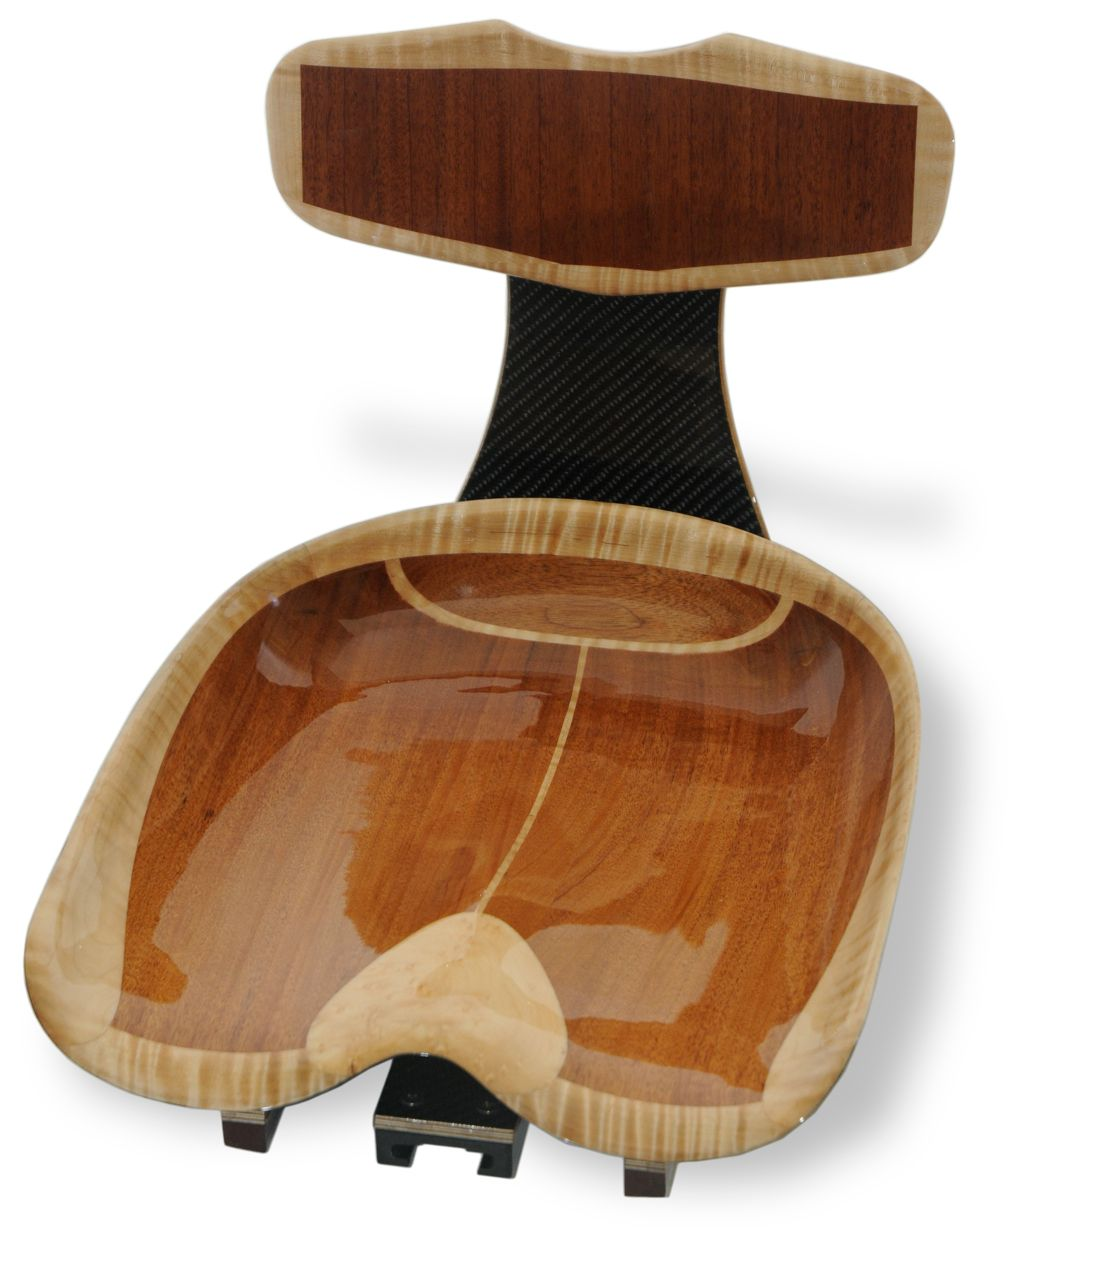 Tractor Seat Boat : This carved wooden seat is much like old cast iron tractor